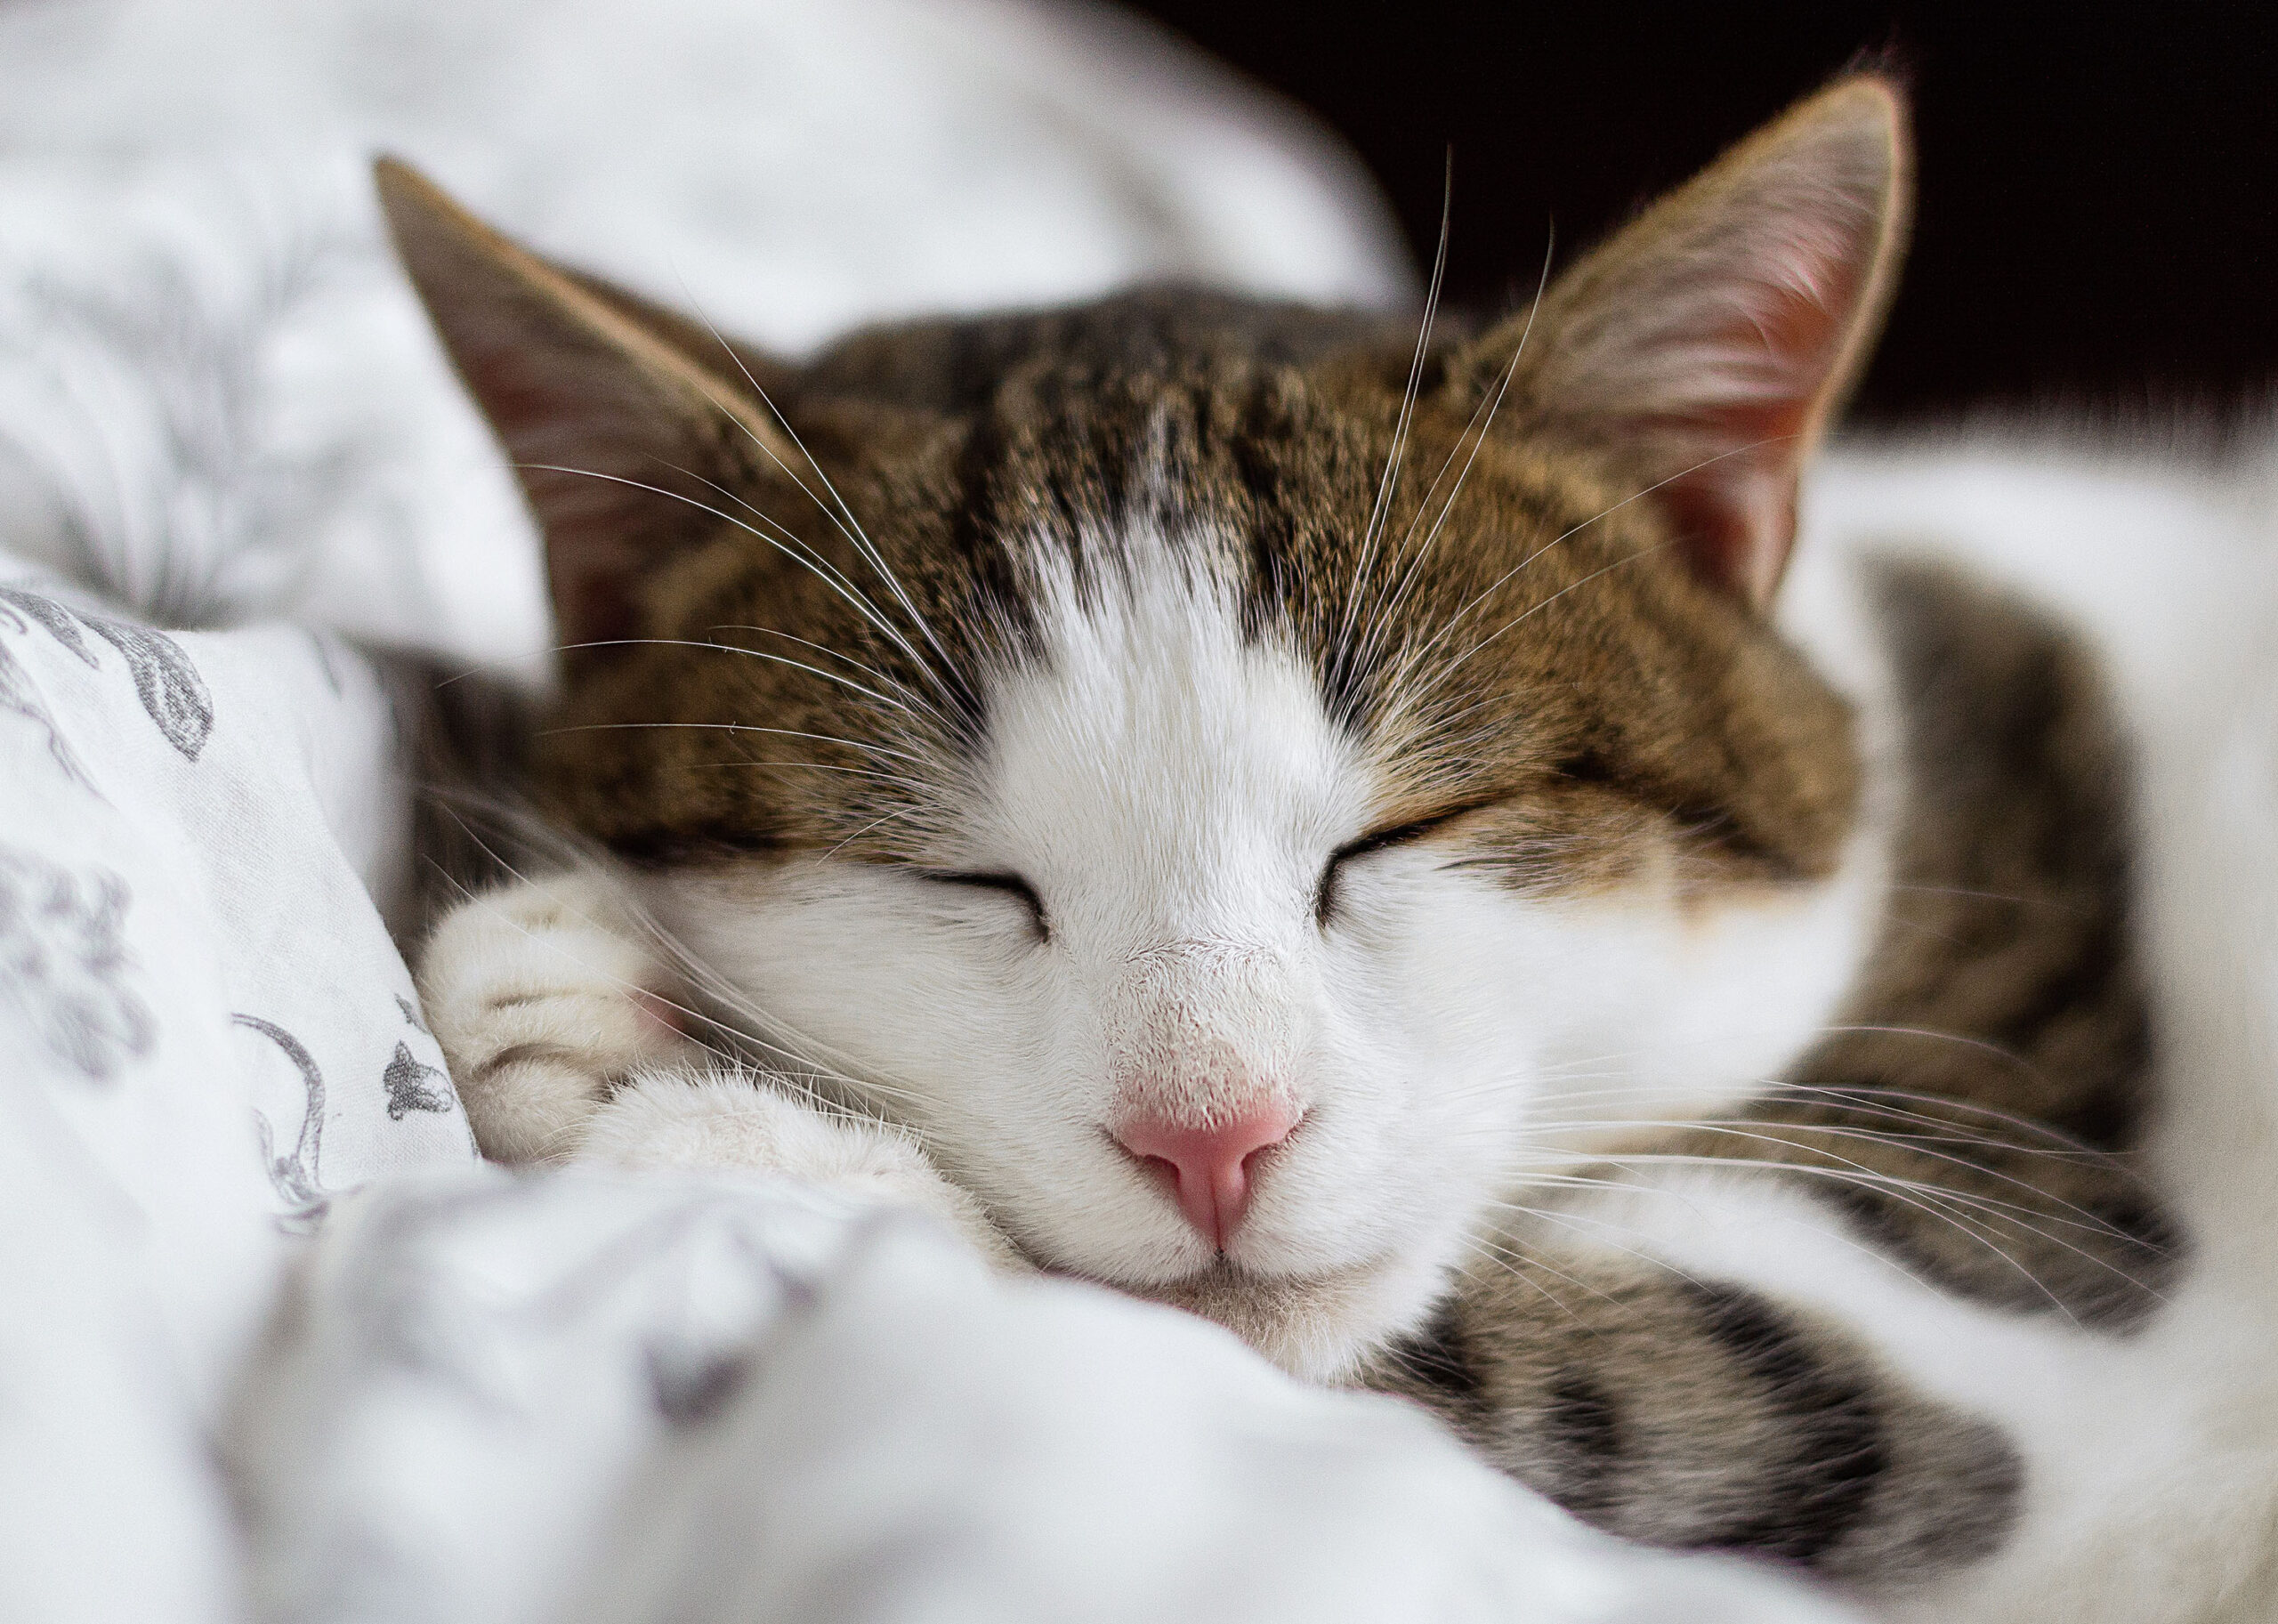 Picture of Sleeping Cat on Bed